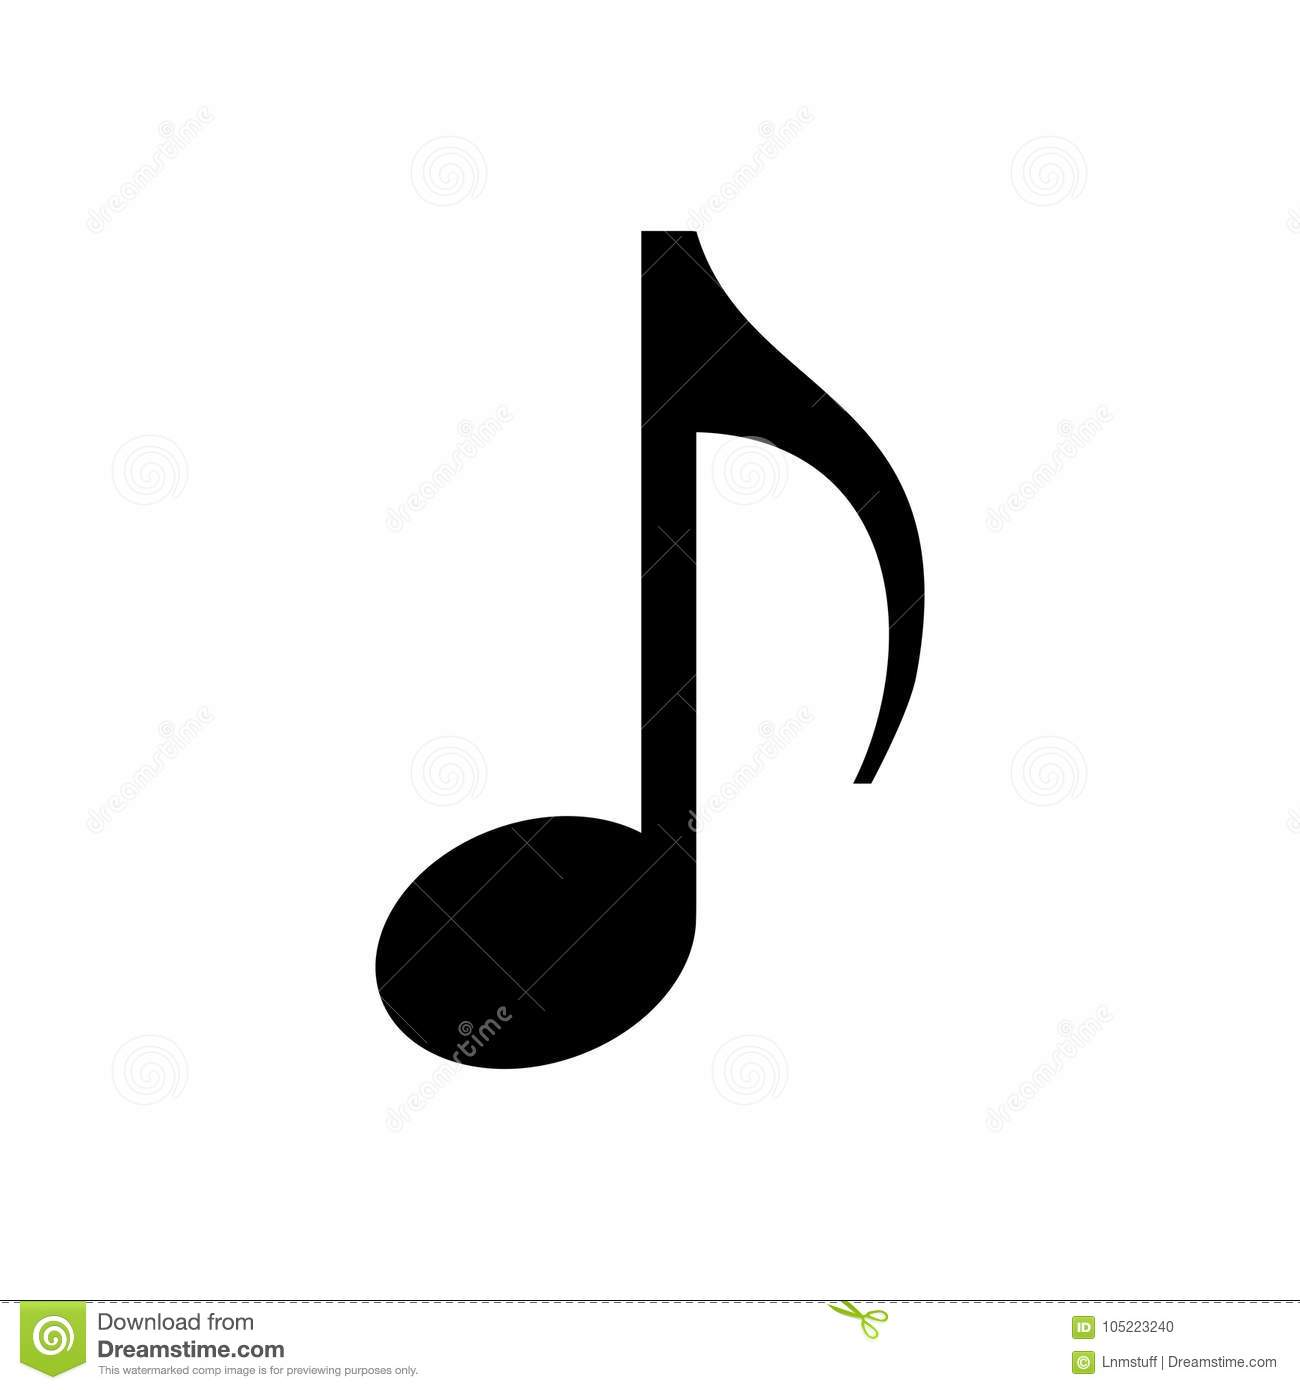 Music note isolated.